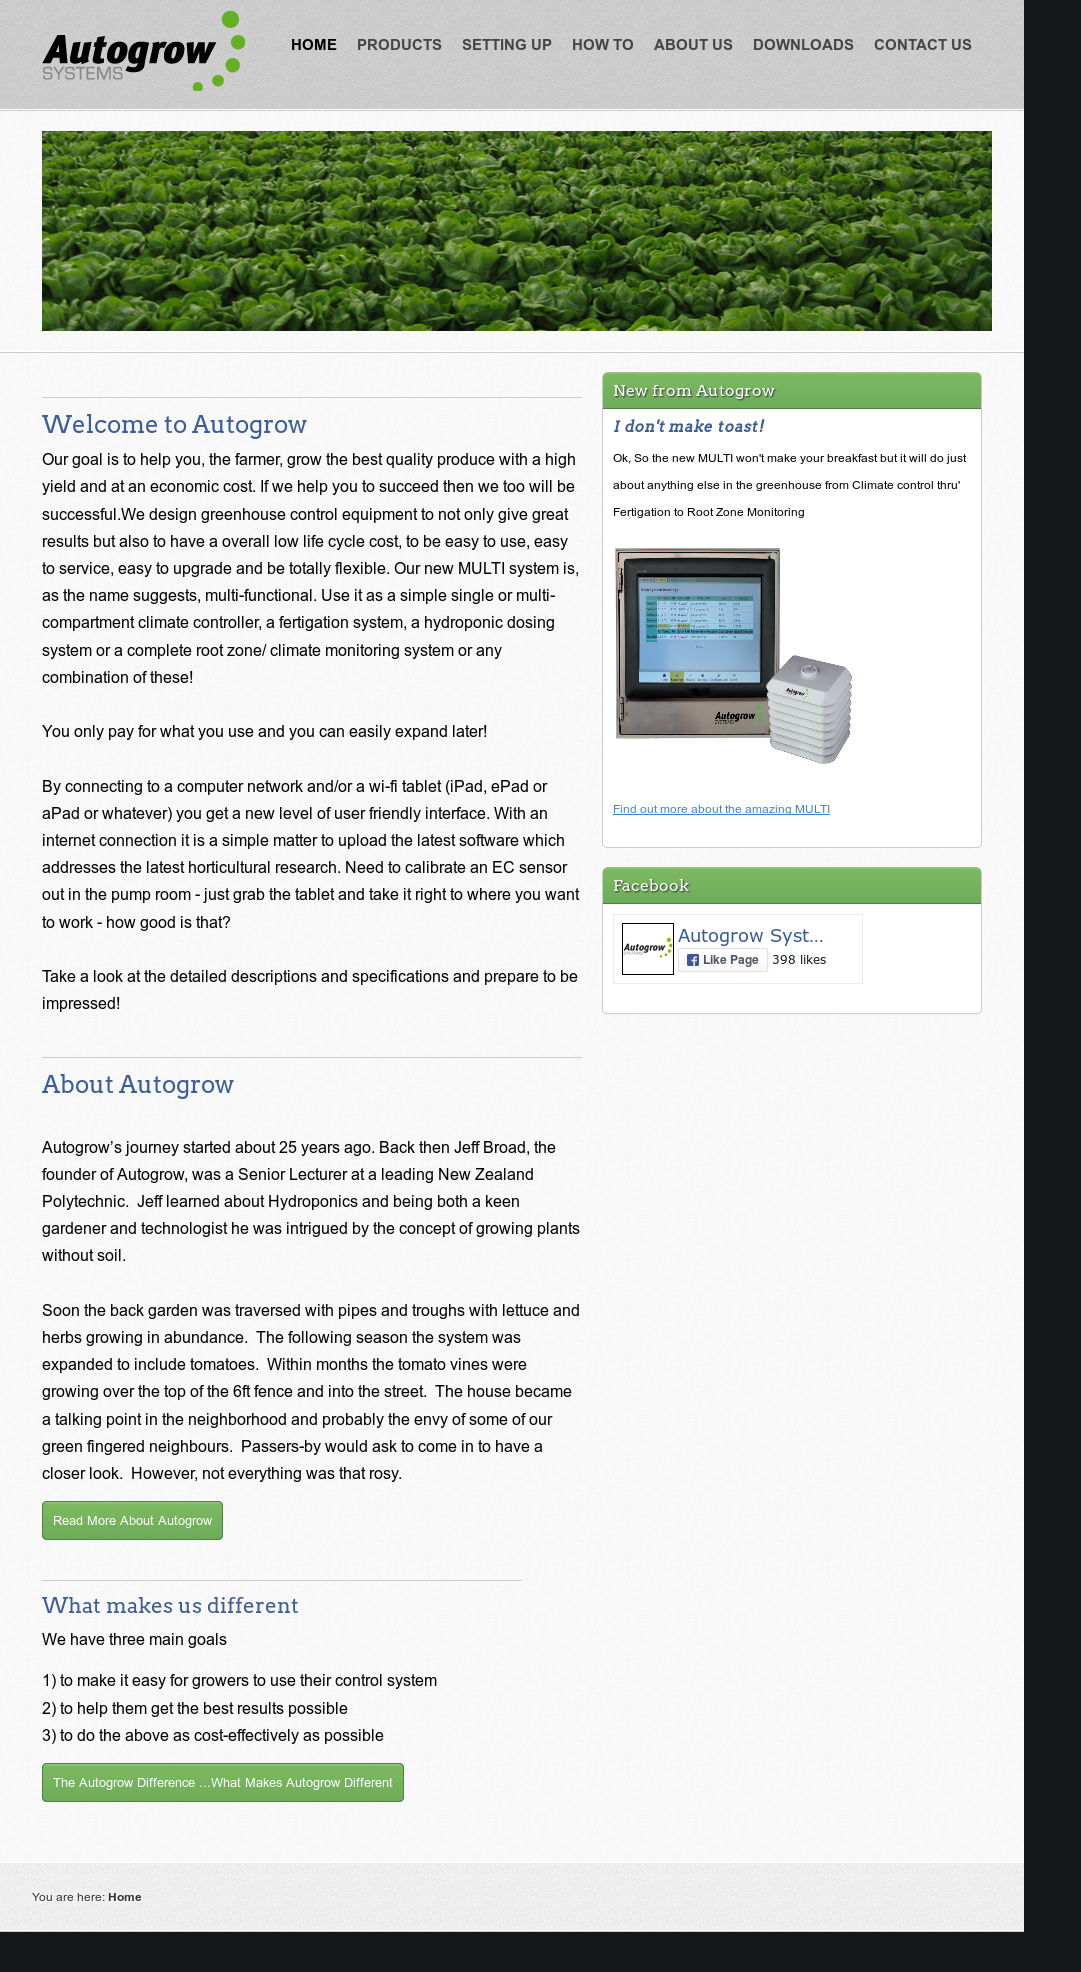 Autogrow Systems Competitors, Revenue and Employees - Owler